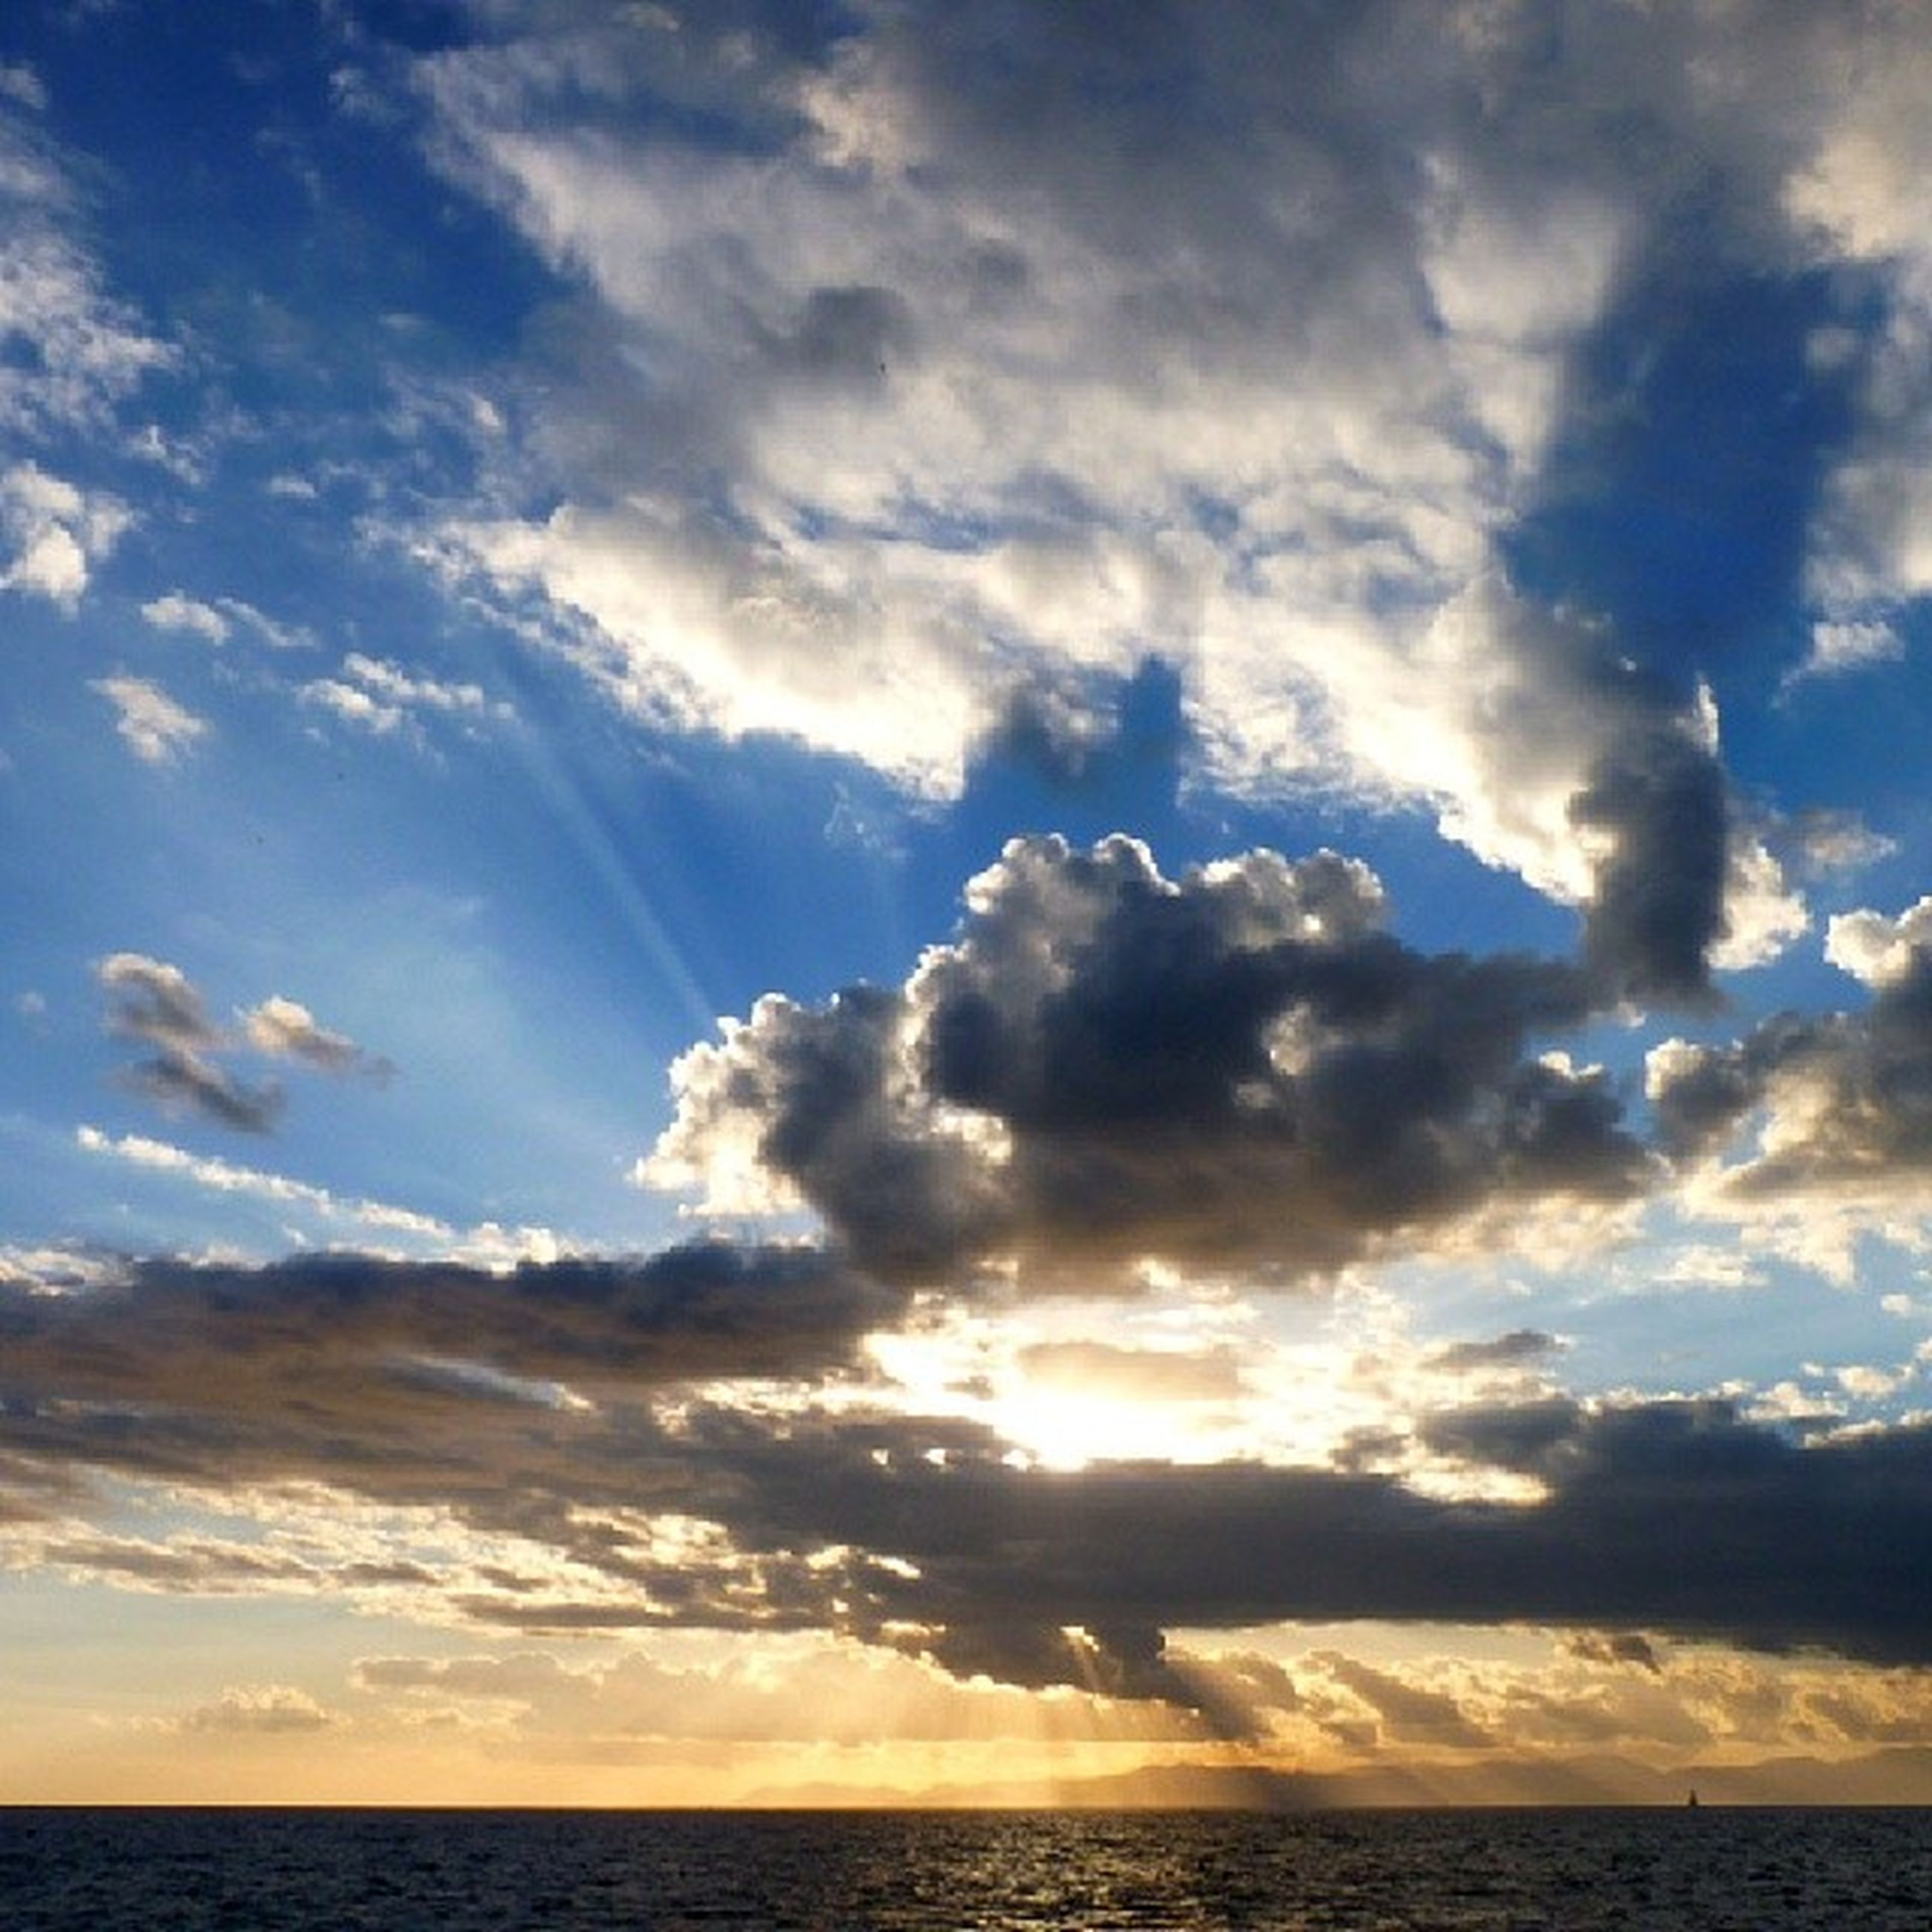 sea, horizon over water, scenics, sky, tranquil scene, beauty in nature, tranquility, water, cloud - sky, sunset, nature, idyllic, cloud, waterfront, cloudy, sun, beach, outdoors, majestic, sunlight